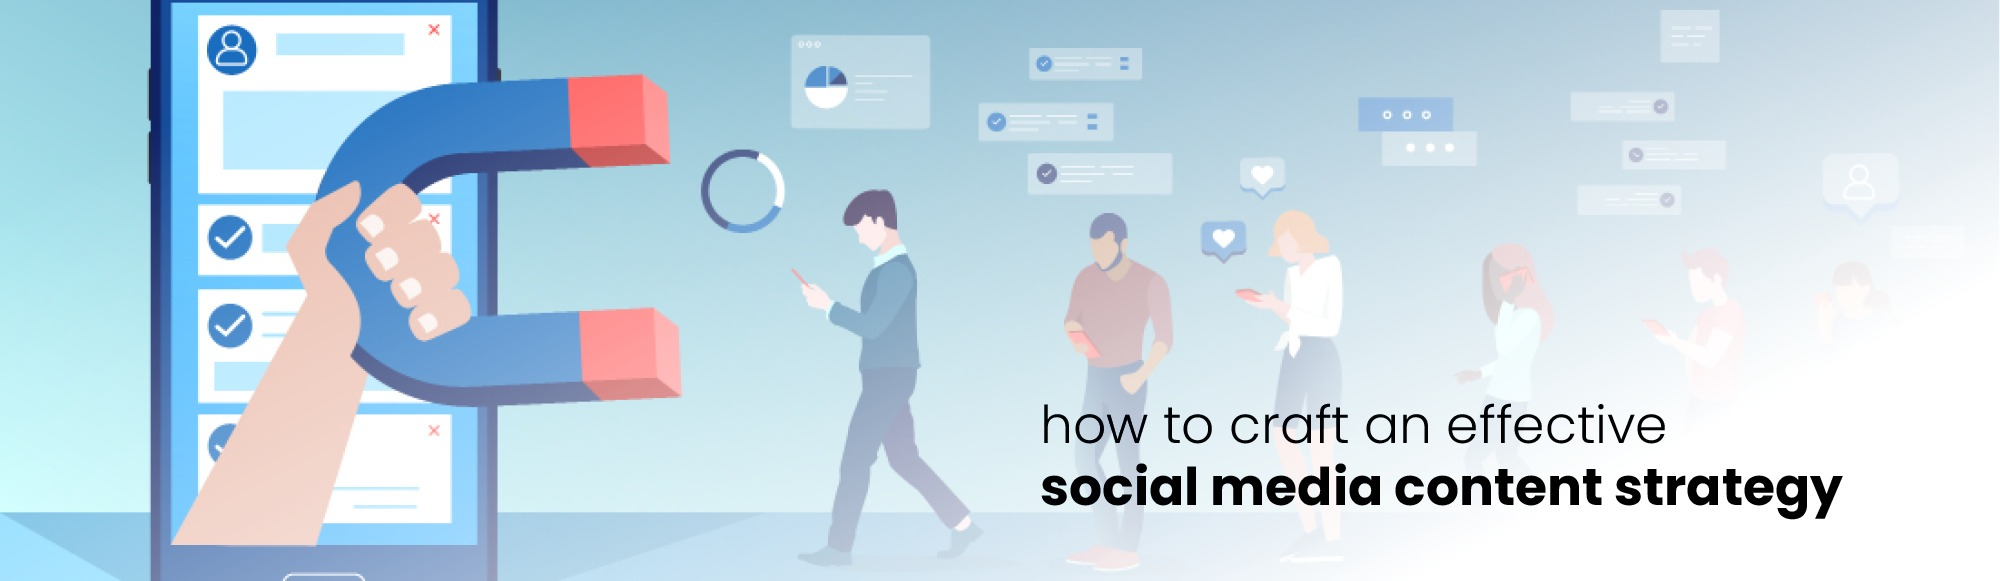 How to Craft an Effective Social Media Content Strategy